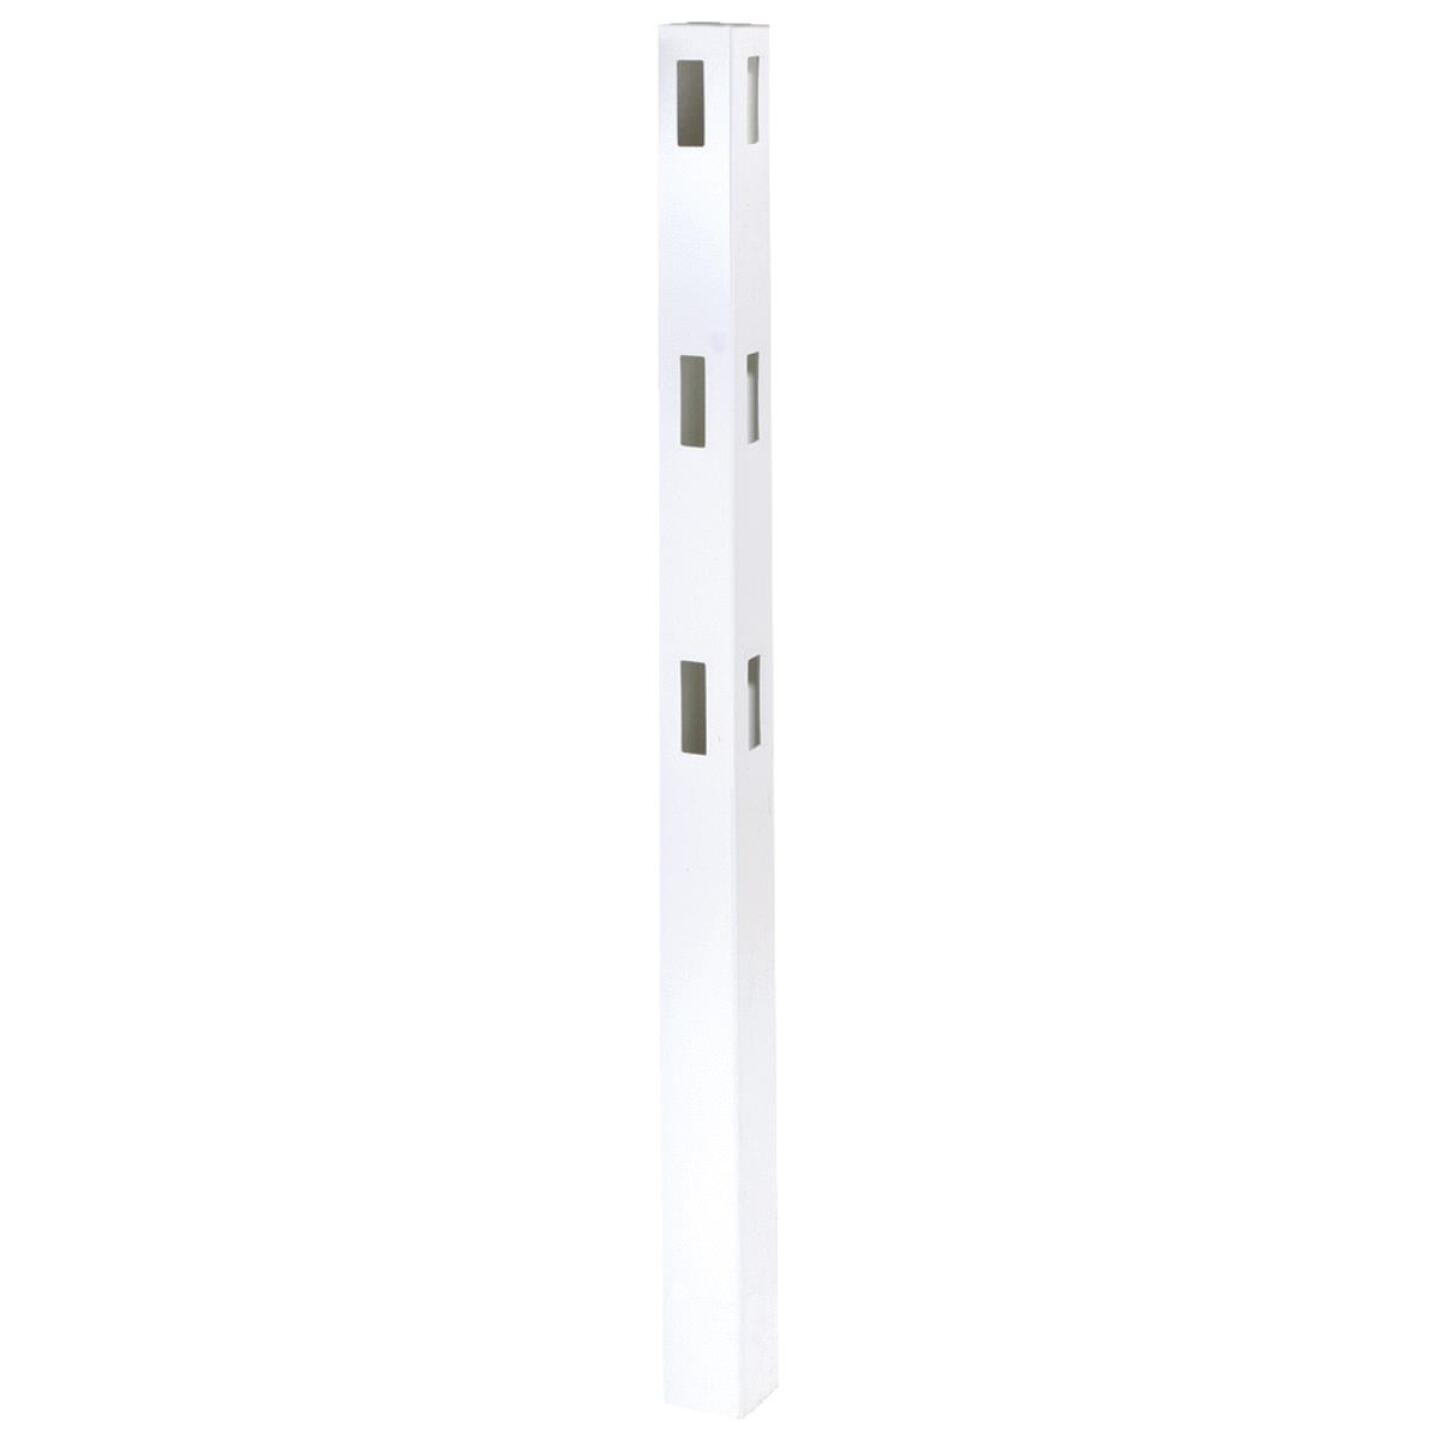 Outdoor Essentials 5 In. x 5 In. x 84 In. White Corner 3-Rail Fence Vinyl Post Image 2